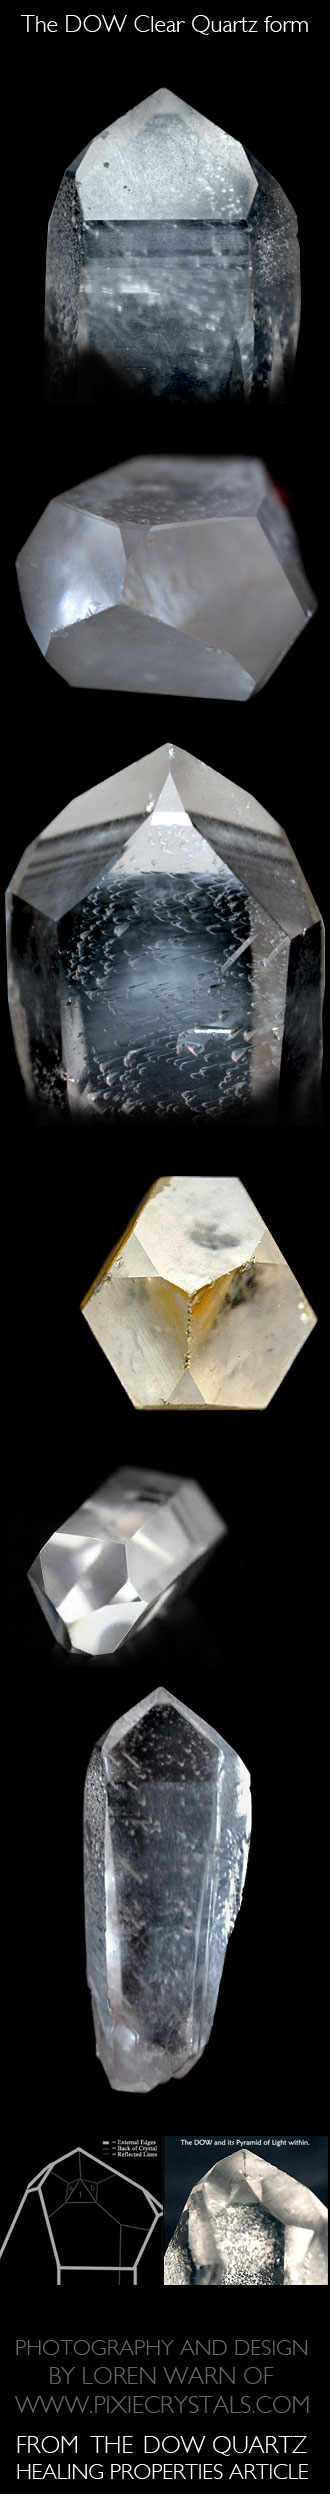 Dow Quartz crystals.. Sacred Geometry of Crystals